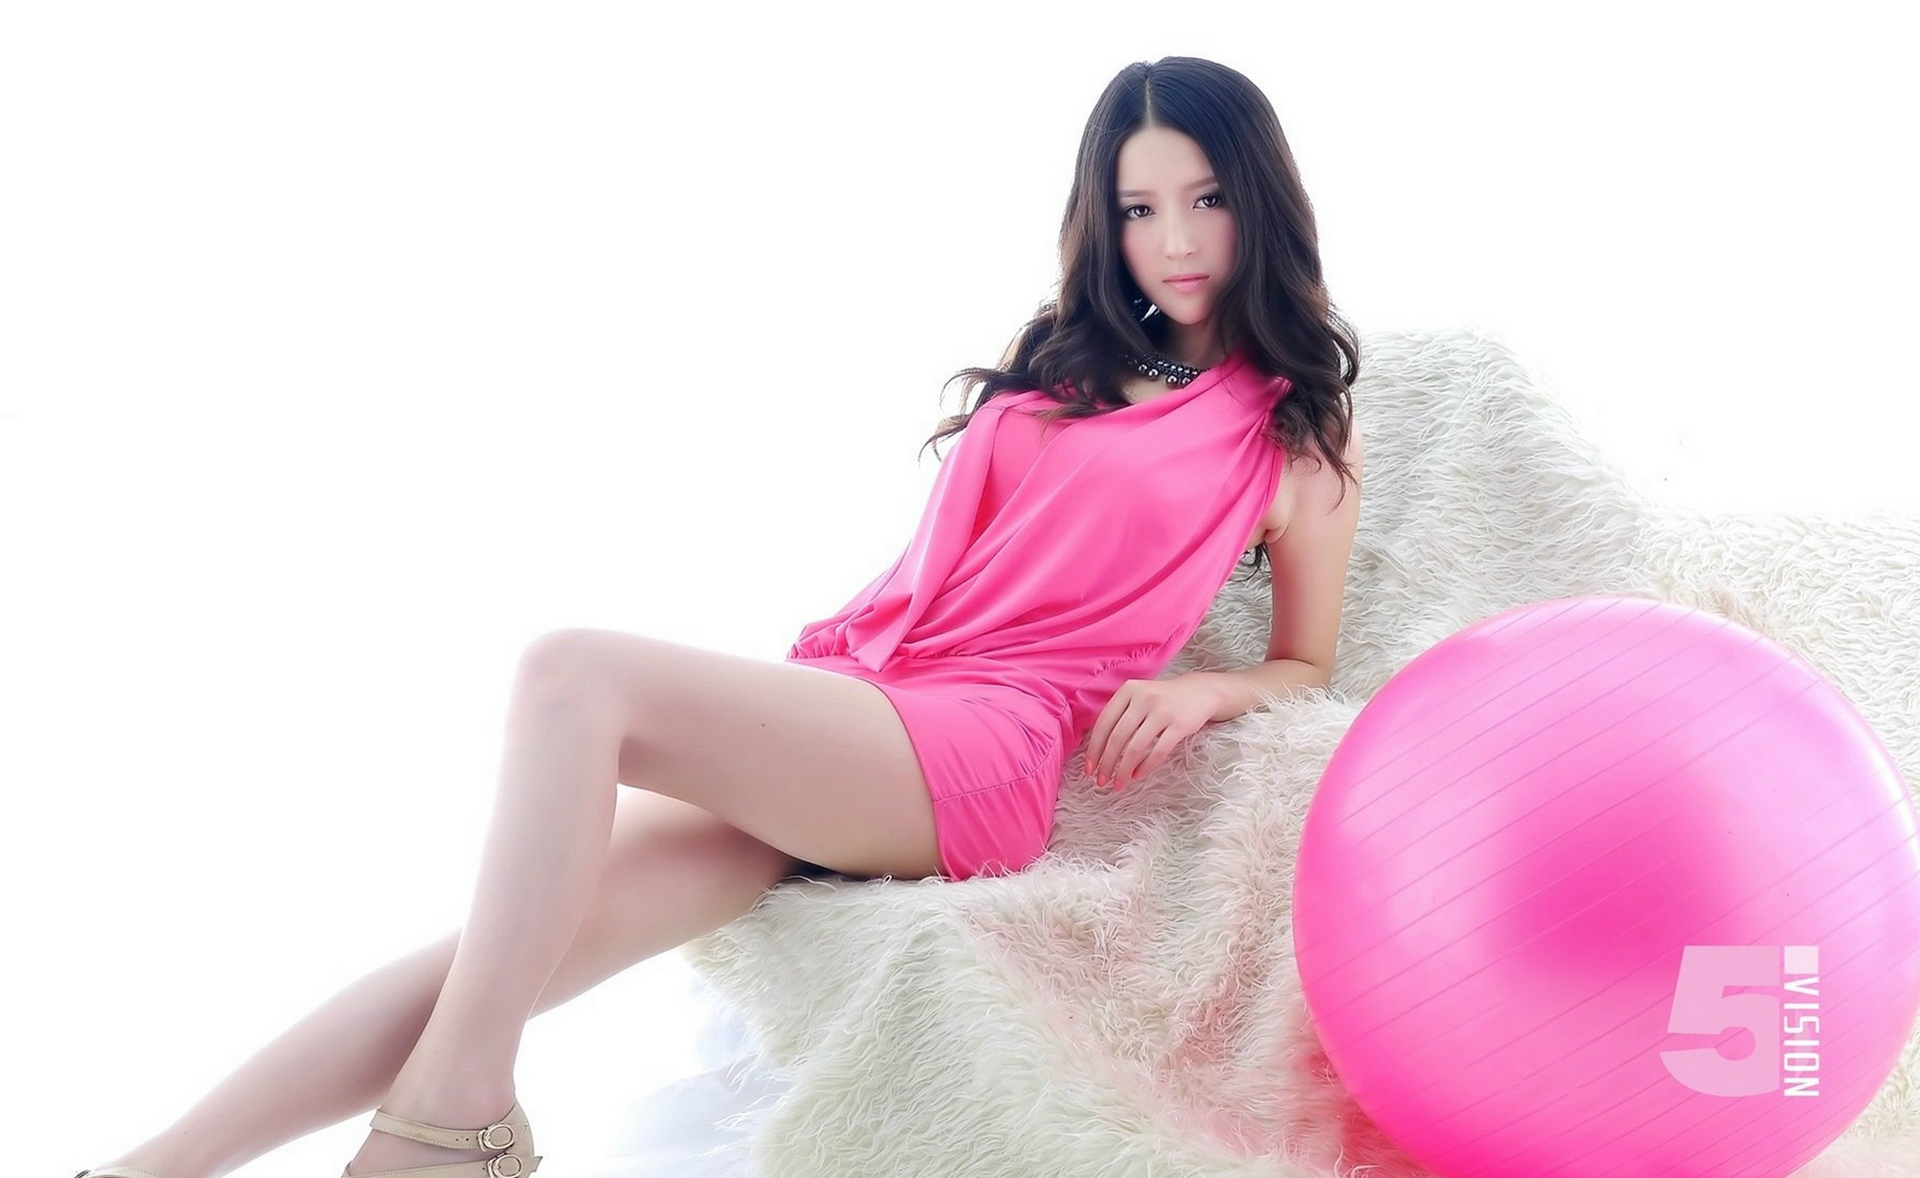 prosperity asian girl personals Pansey's best 100% free asian girls dating site meet thousands of single asian women in pansey with mingle2's free personal ads and chat rooms our network of asian women in pansey is the perfect place to make friends or find an asian girlfriend in pansey.